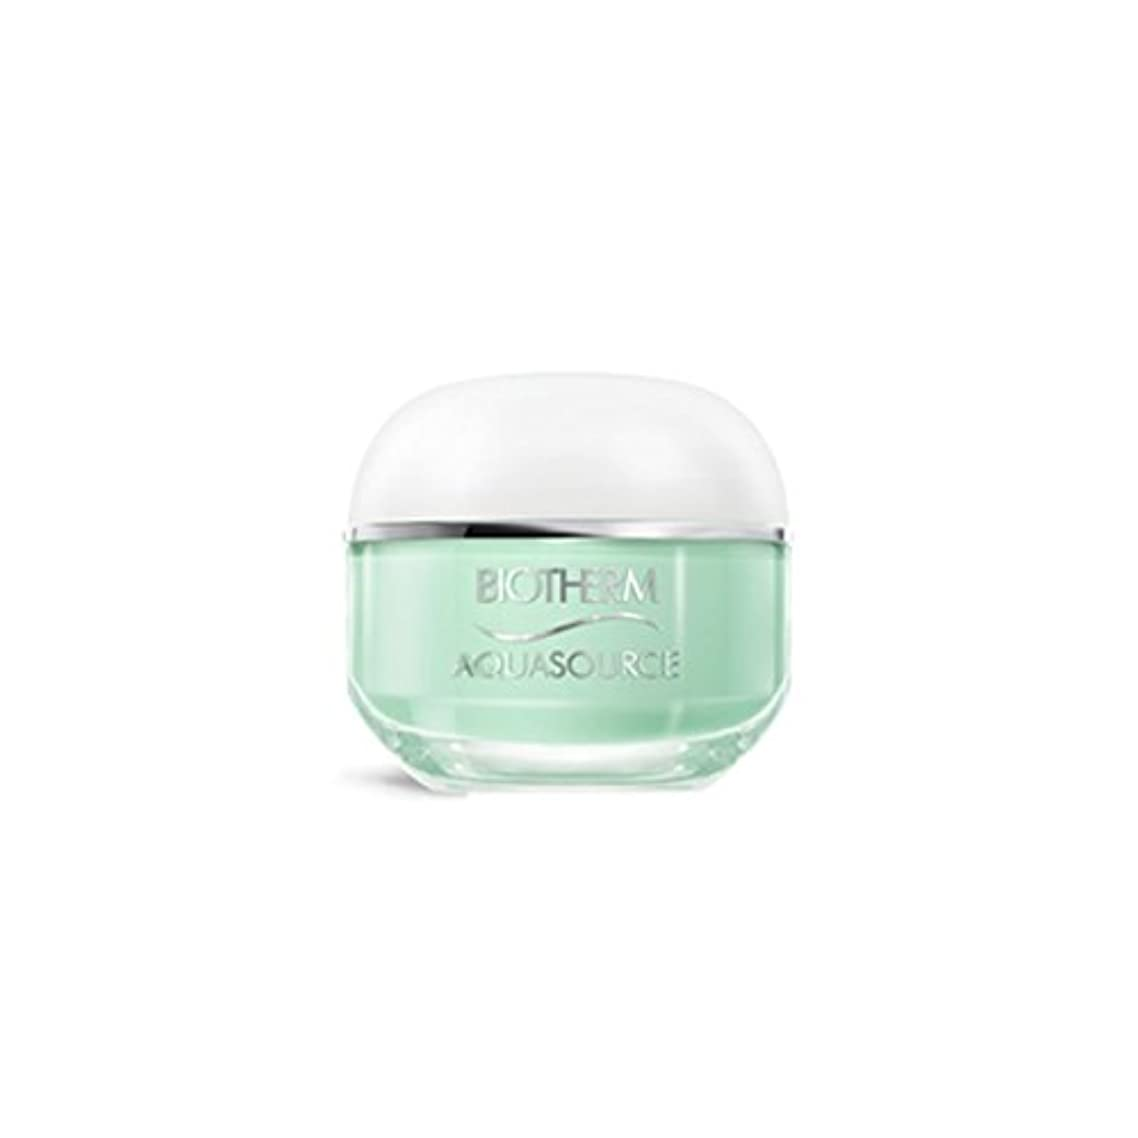 発音するバケツ最後にビオテルム Aquasource Gel Intense Regenerating Moisturizing Gel - For Normal/Combination Skin 50ml/1.69oz並行輸入品